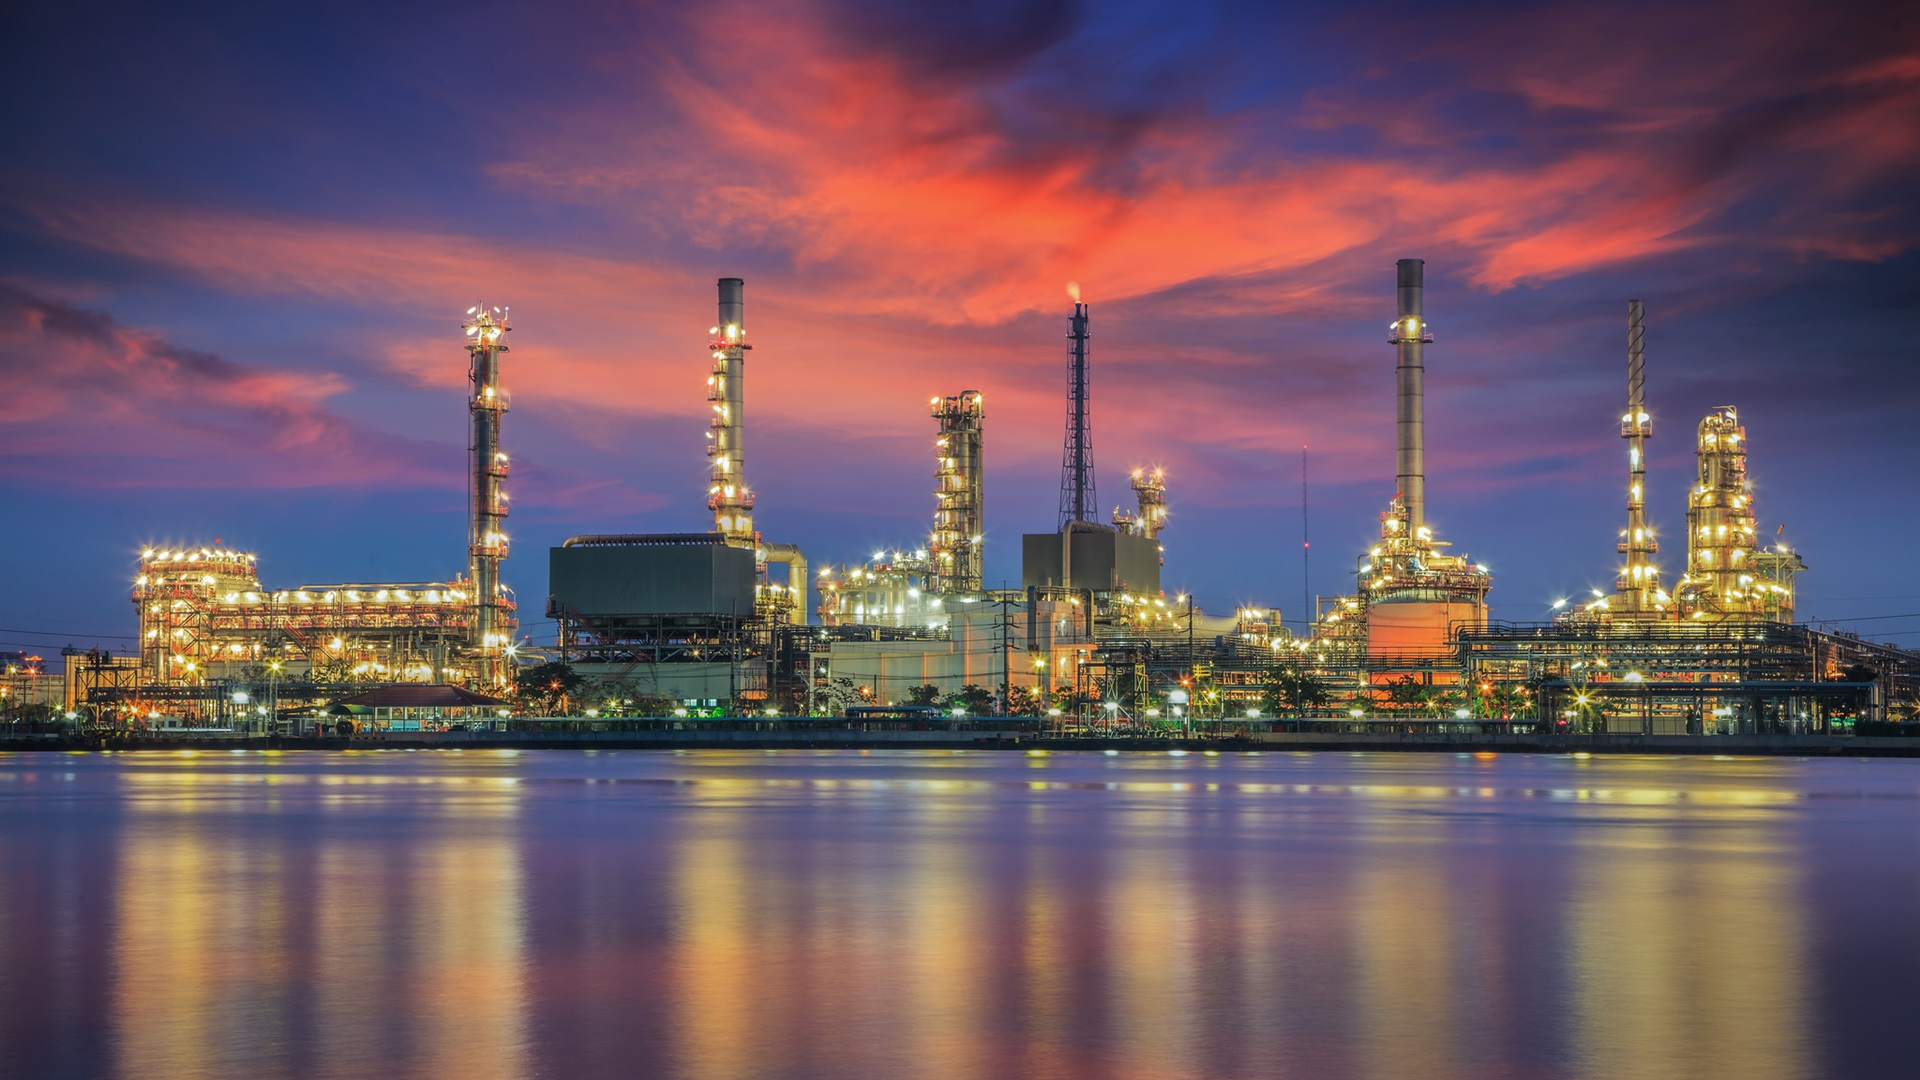 Oil-refinery-water-reflection-night-ligh